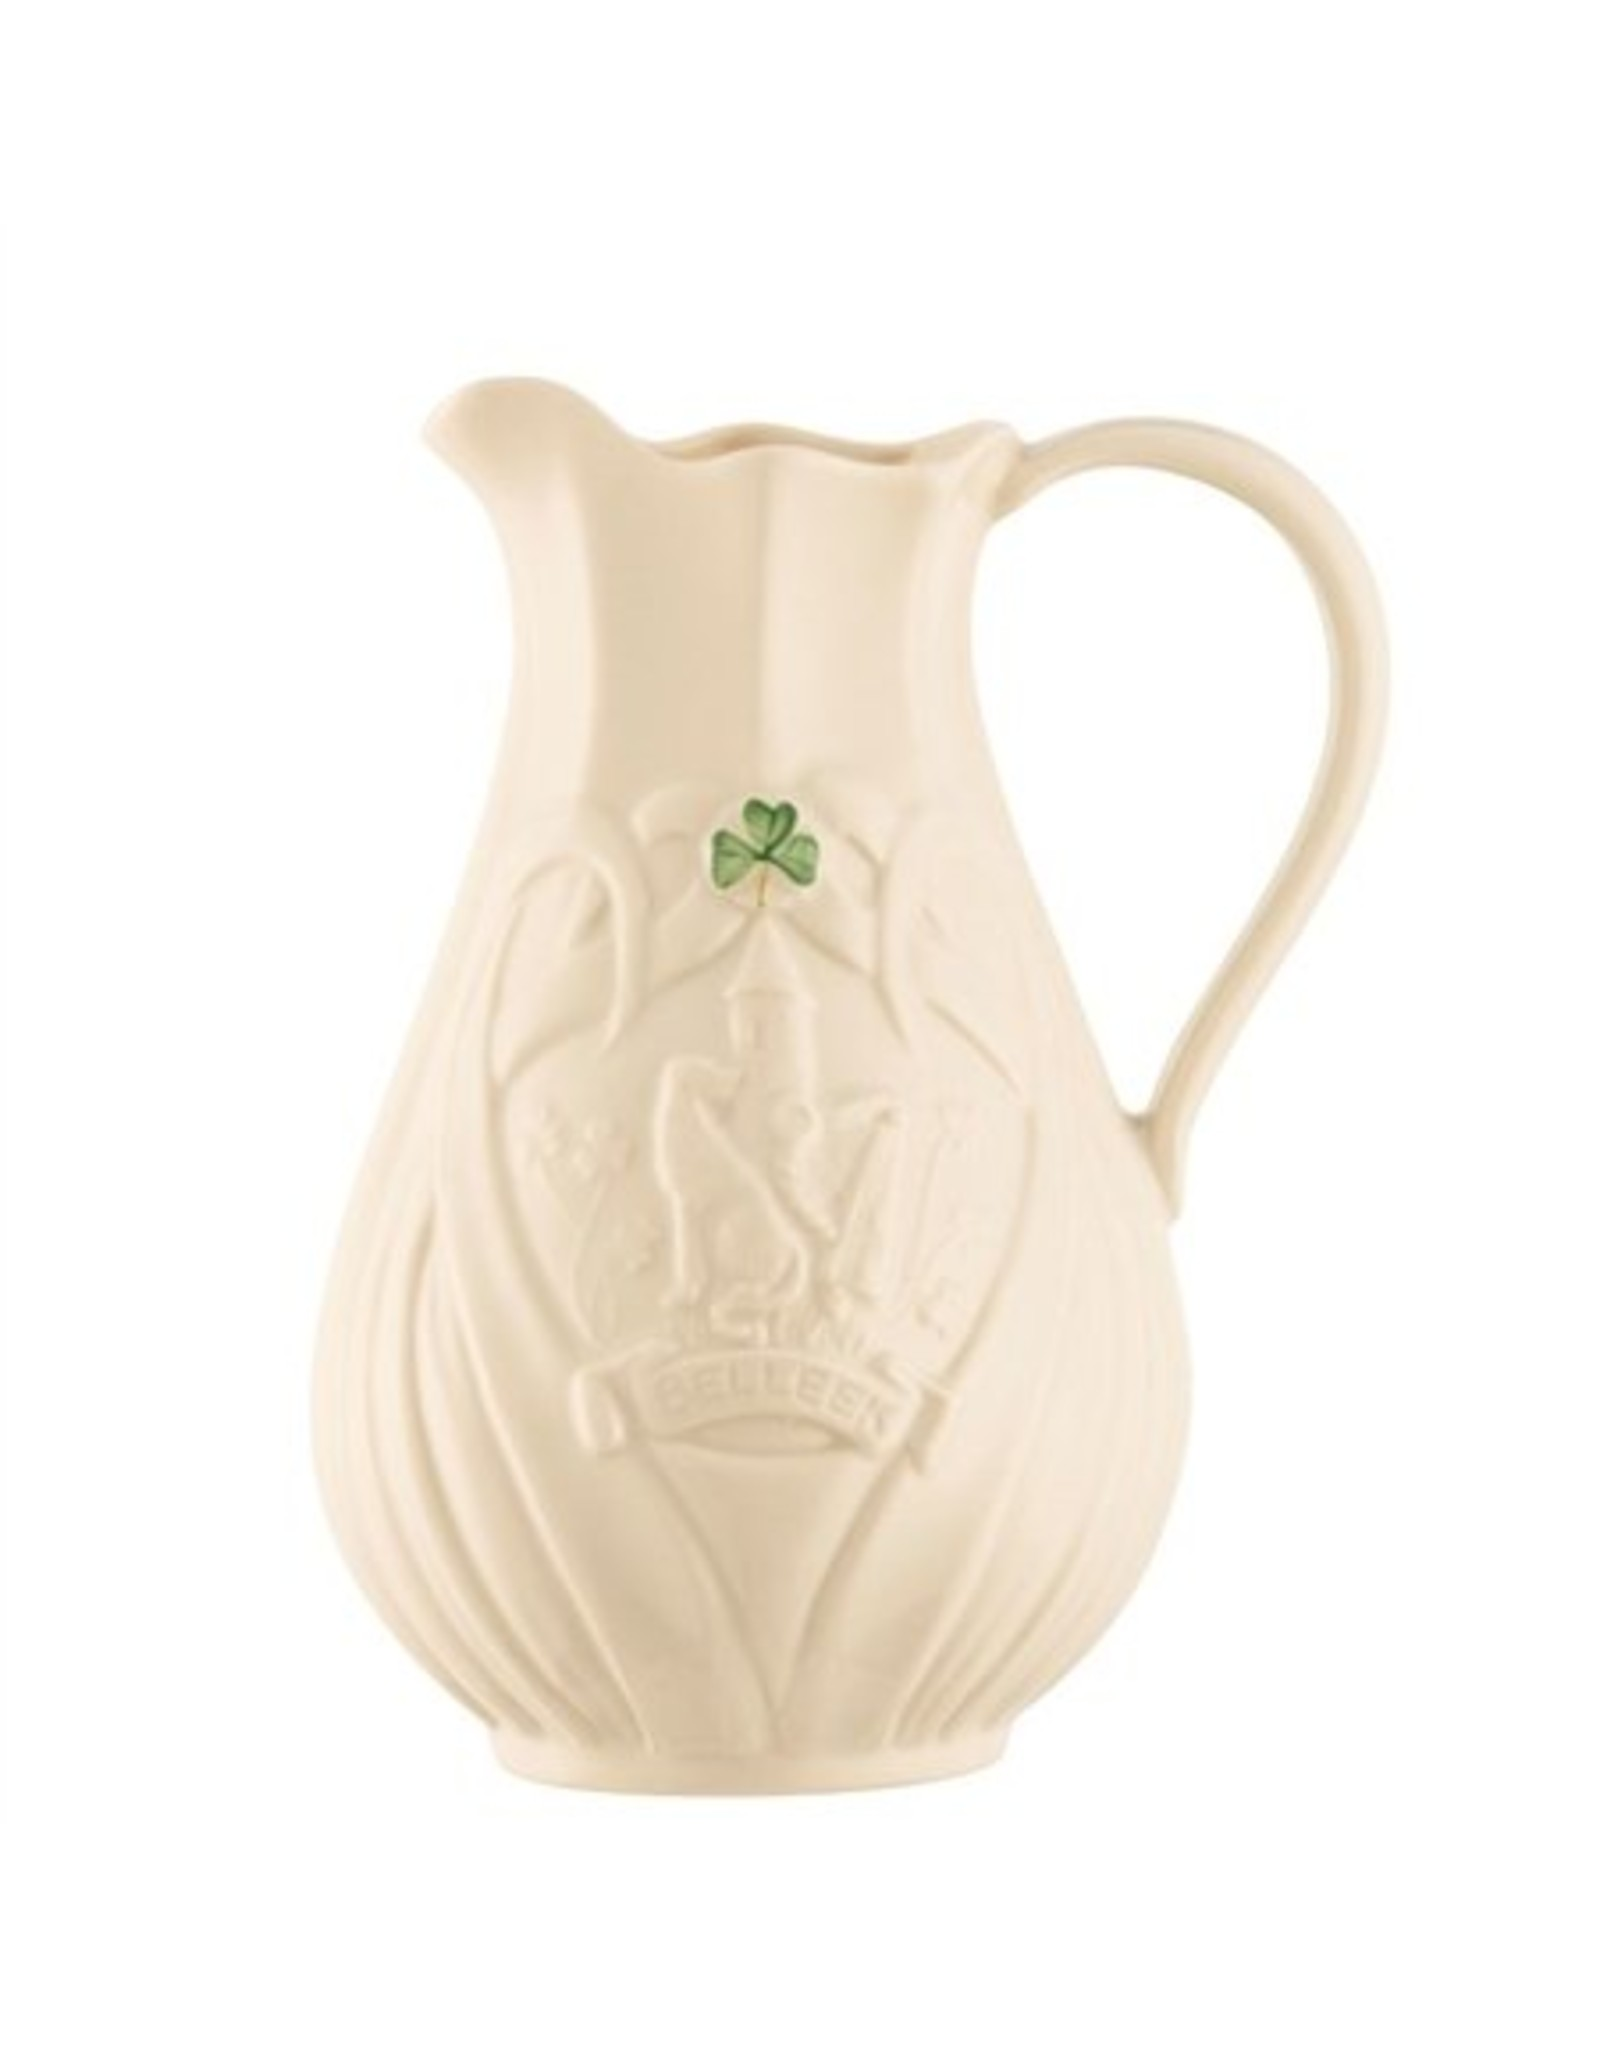 Belleek Belleek 2018 Edition Trademark Pitcher